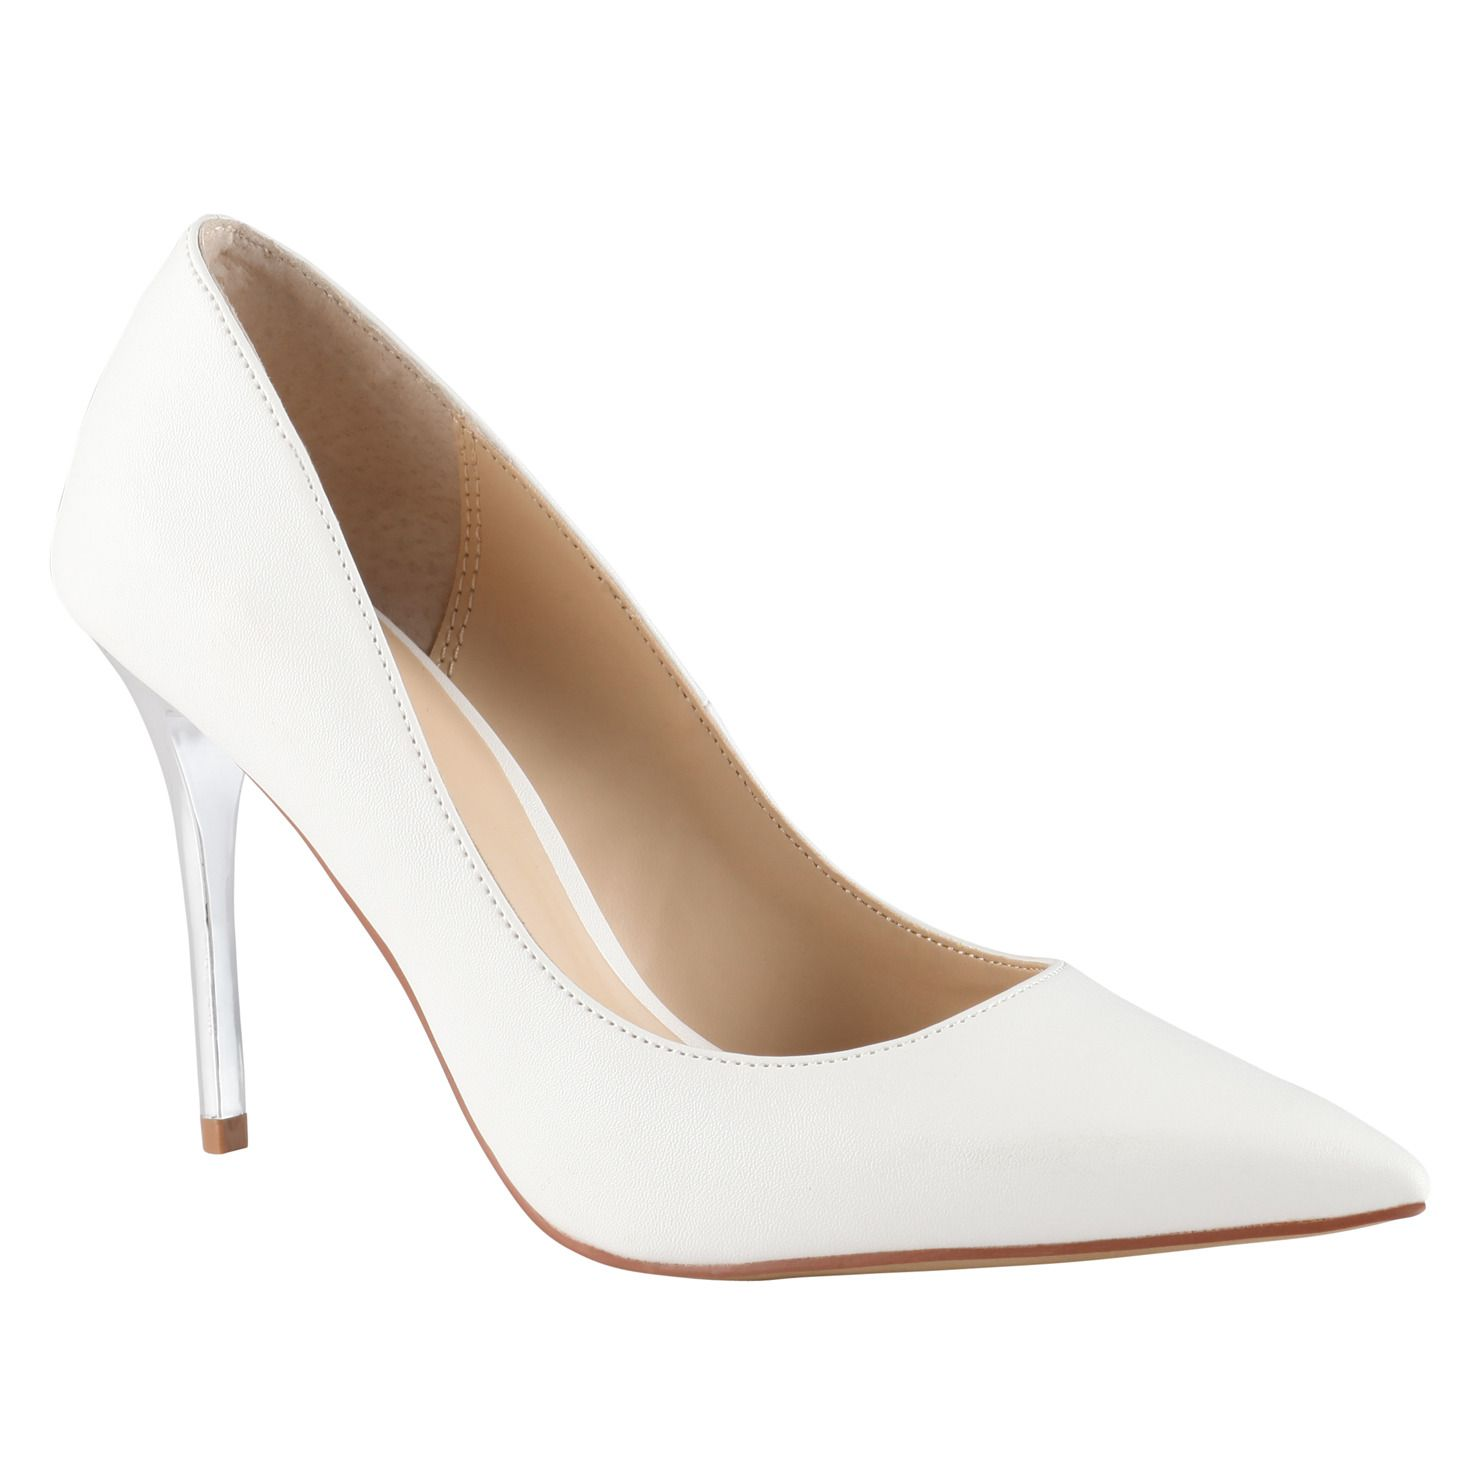 CALIOPA - women's high heels shoes for sale at ALDO Shoes.i ...